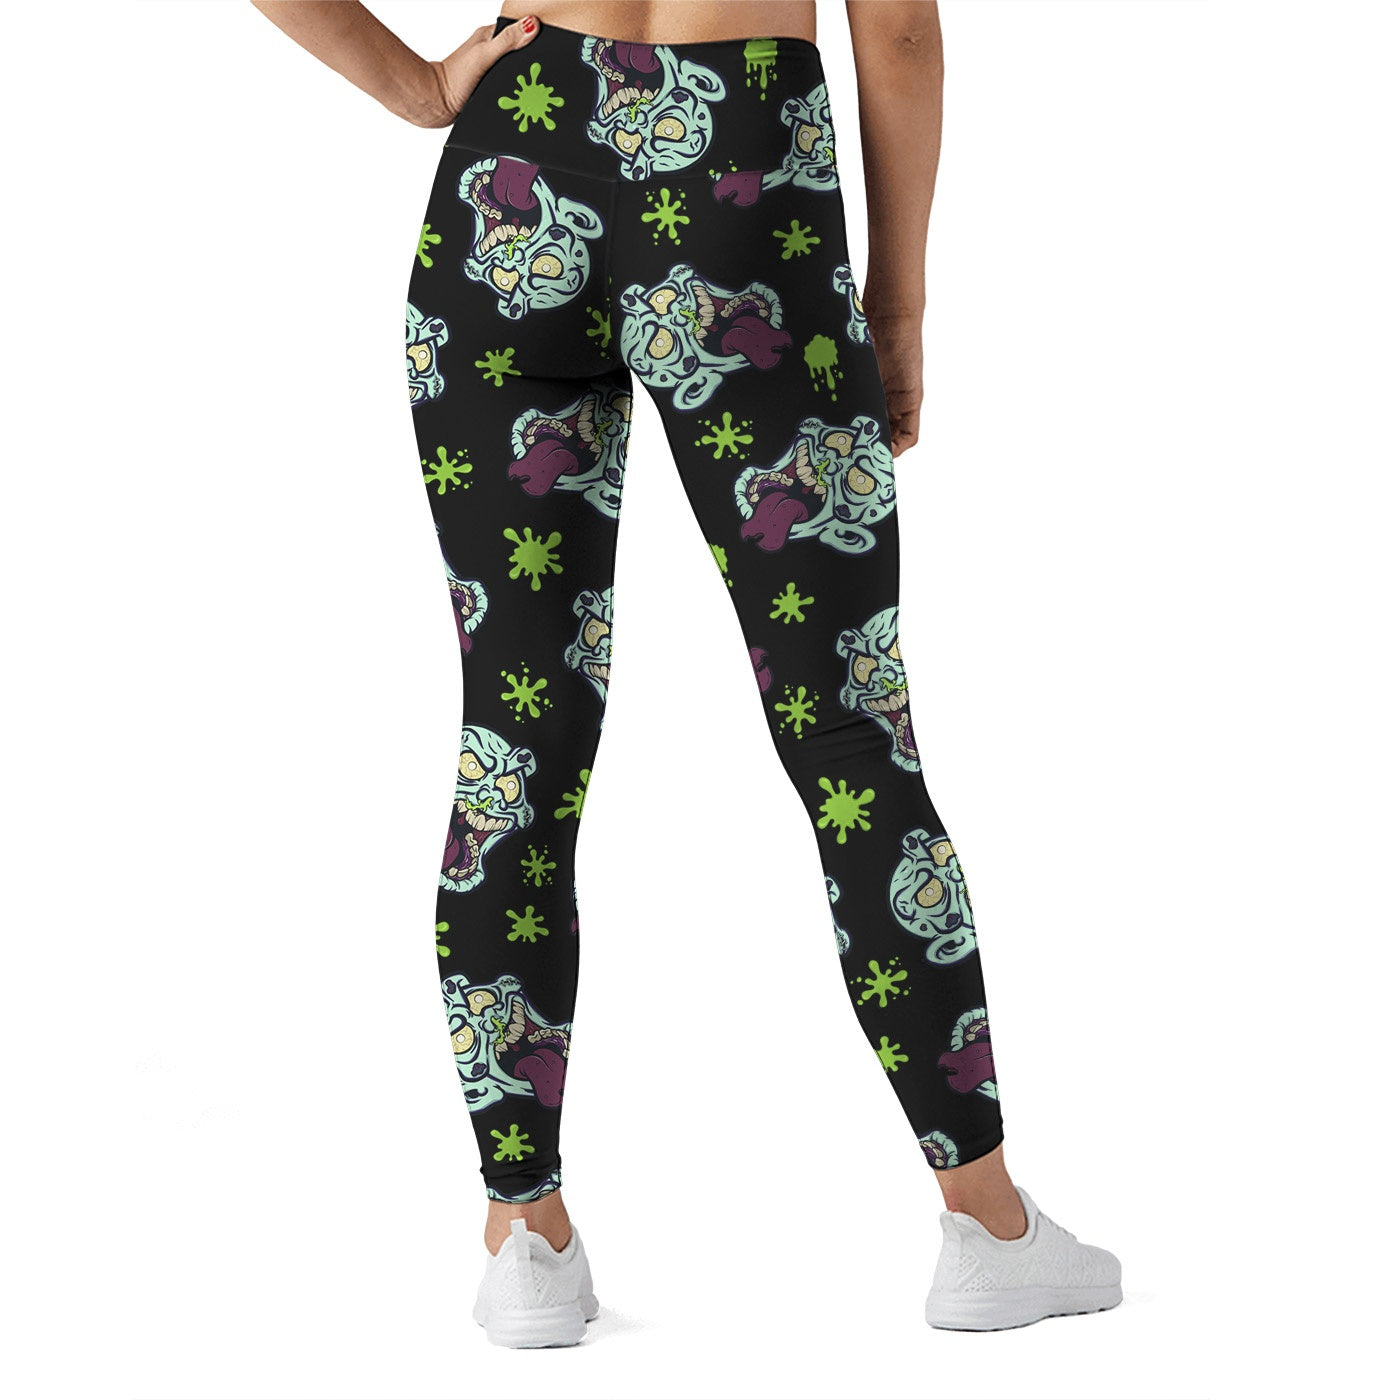 Silly Zombie Leggings